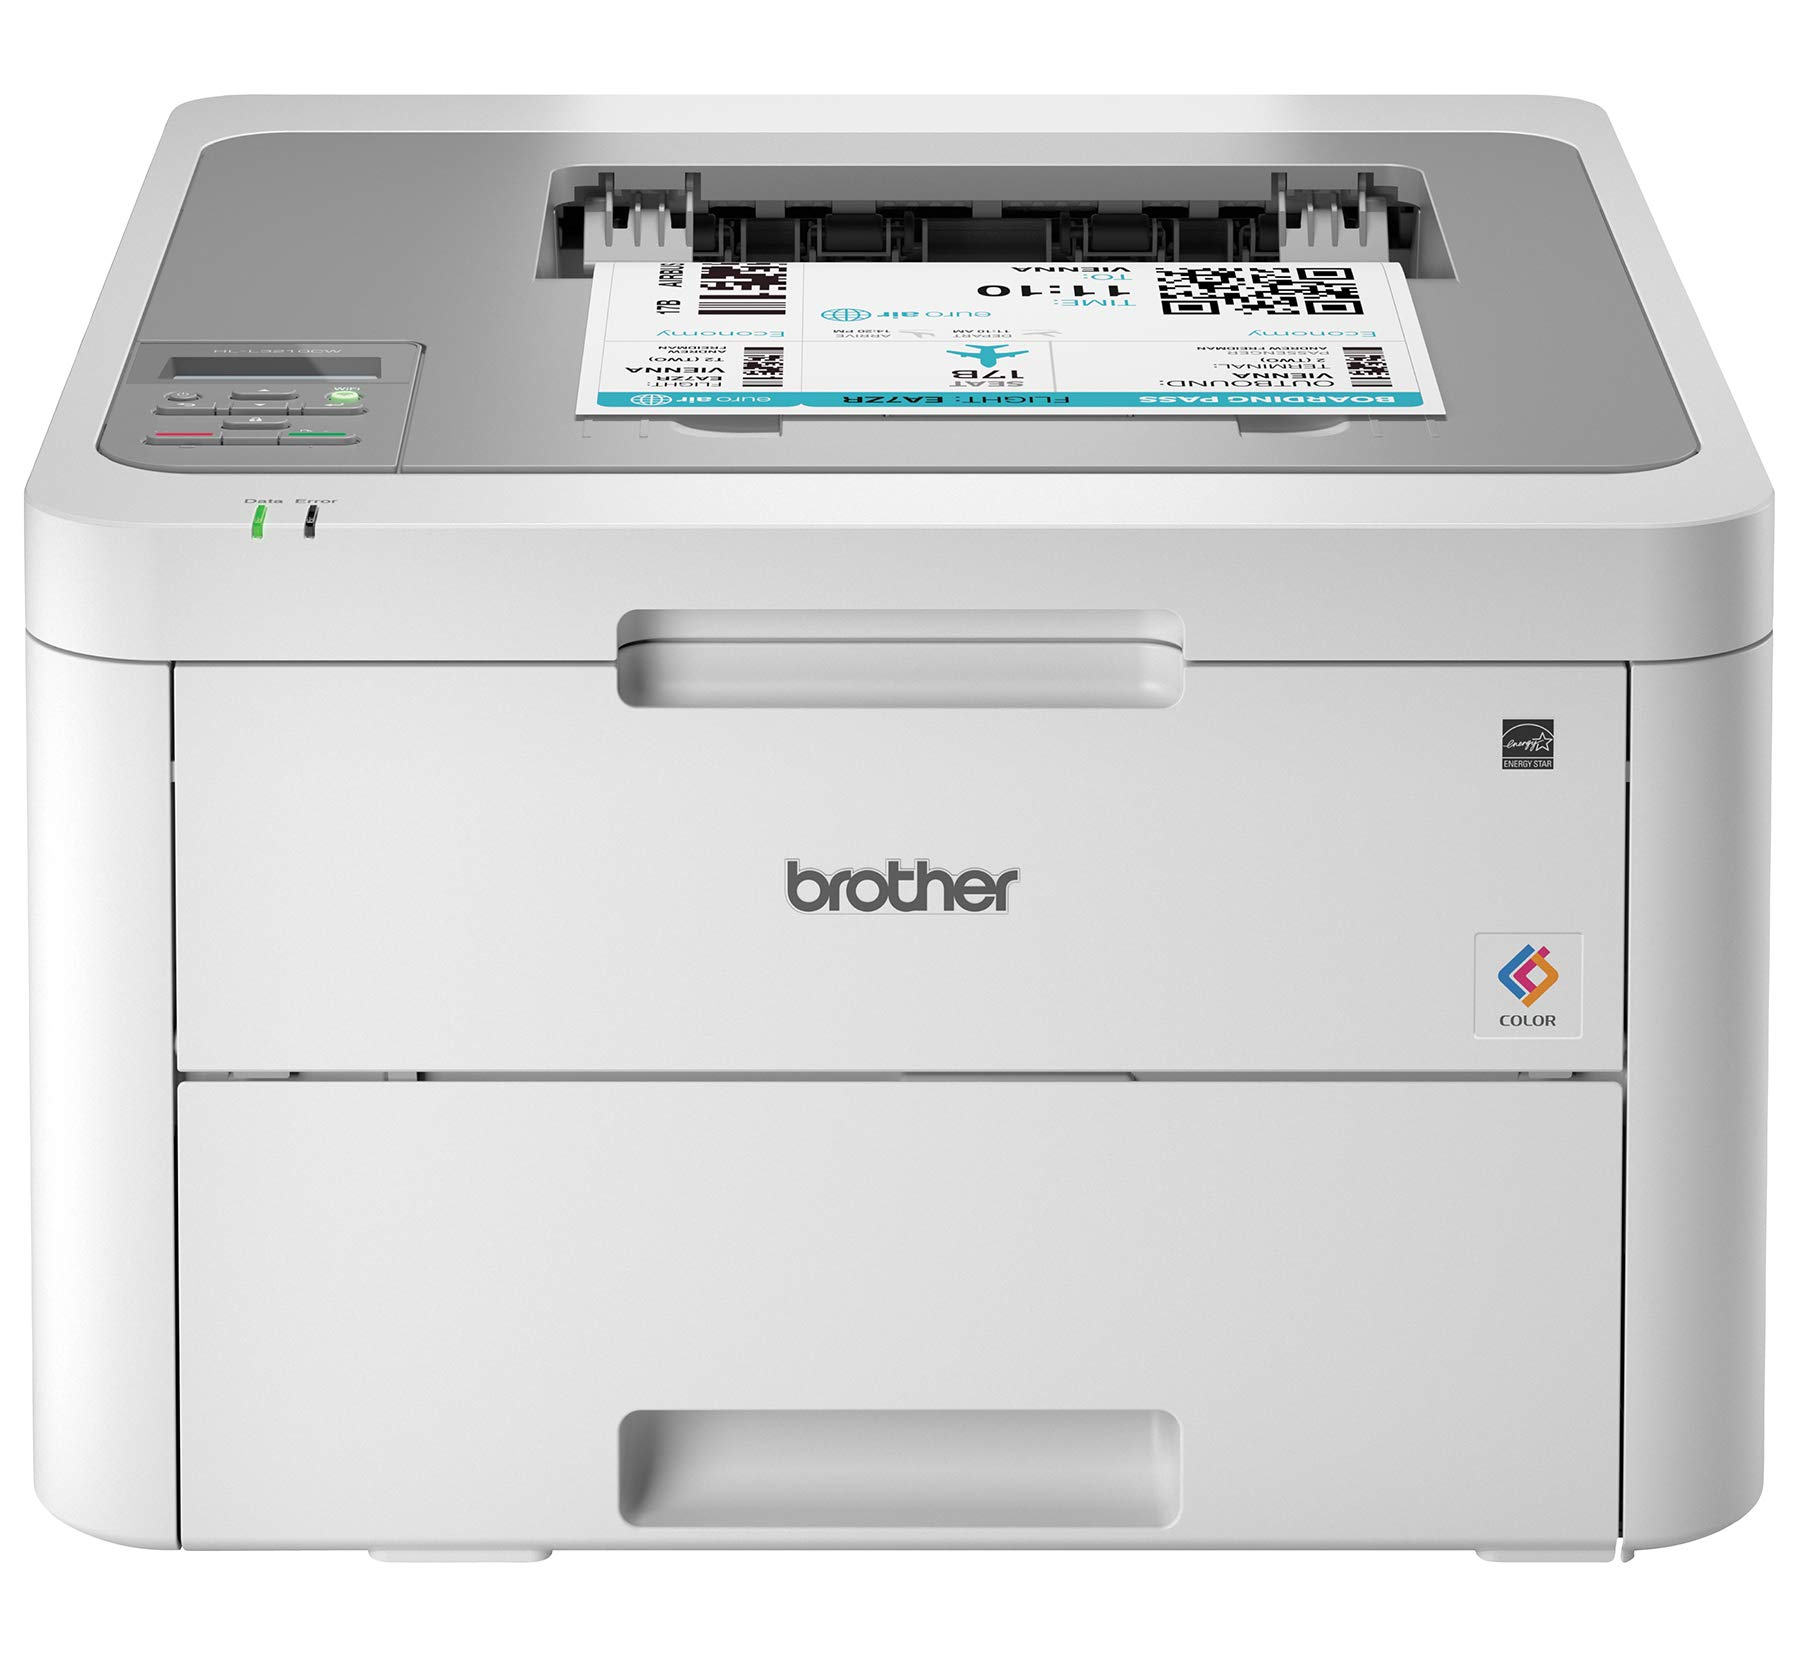 Brother HL-L3210CW Compact Digital Color Printer Providing Laser Printer Quality Results with Wireless, Amazon Dash Replenishment Enabled, White by Brother